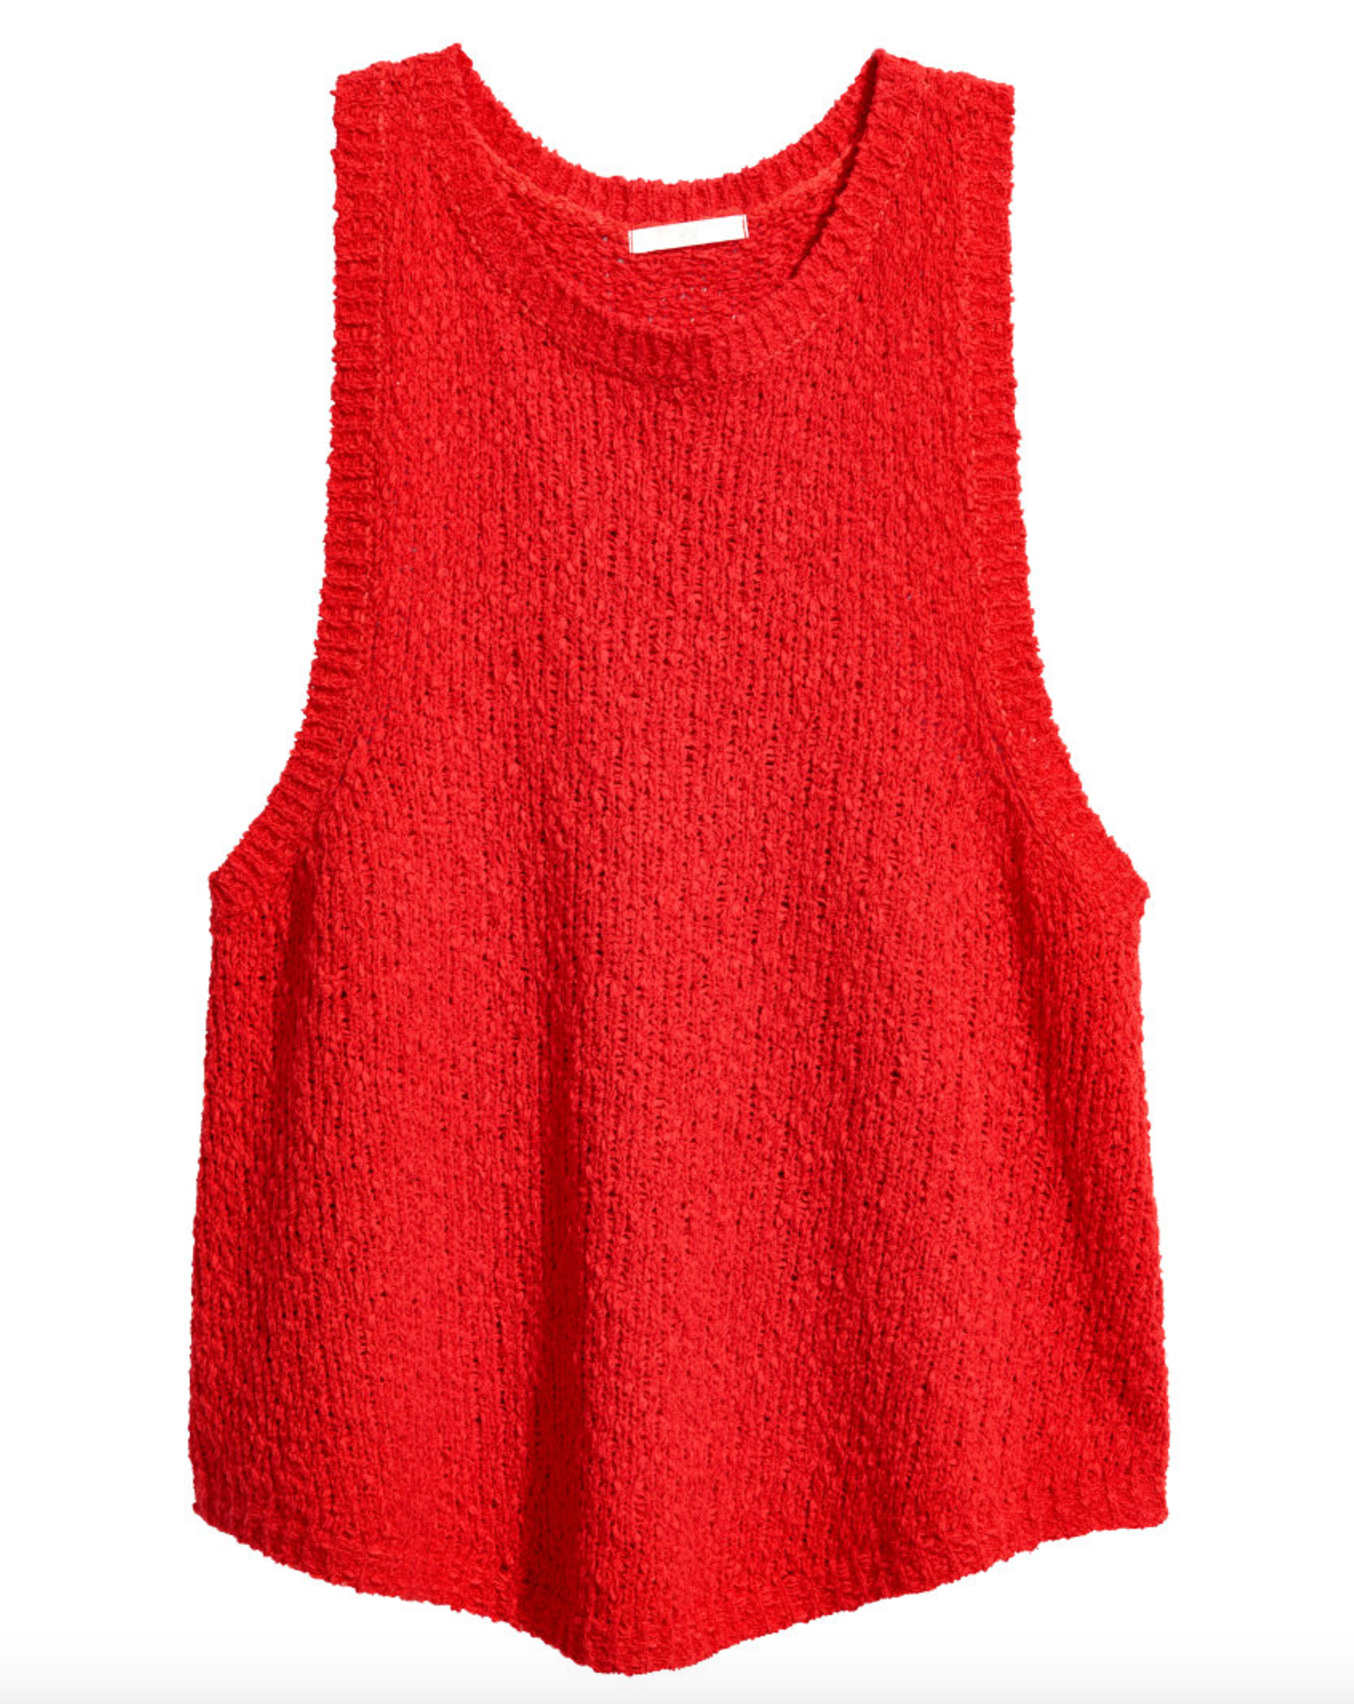 Tanger Outlets H&M red knit top